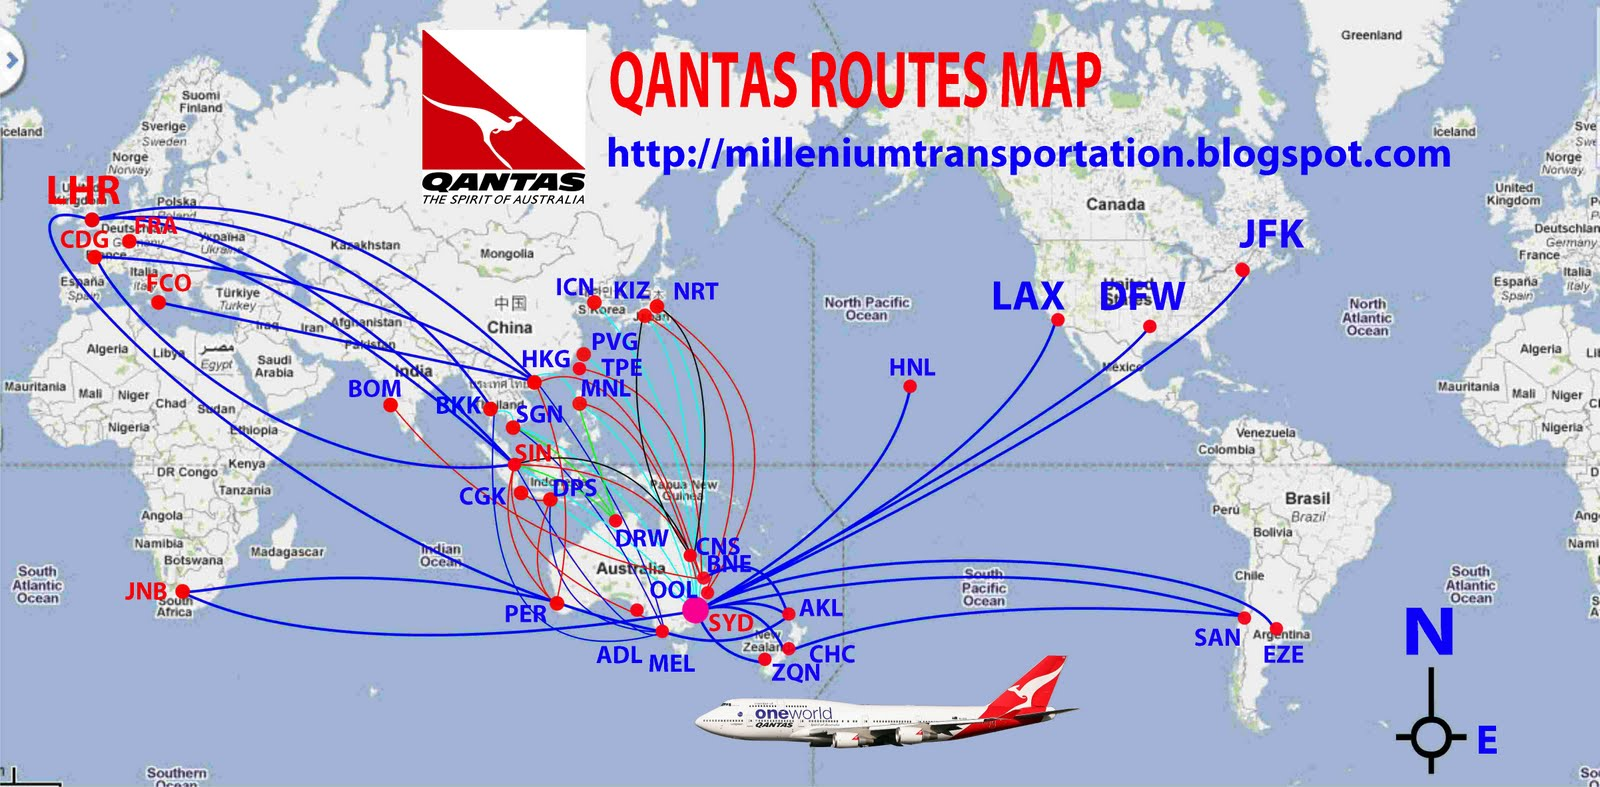 Qantas Route Map australian airlines: Qantas routes map